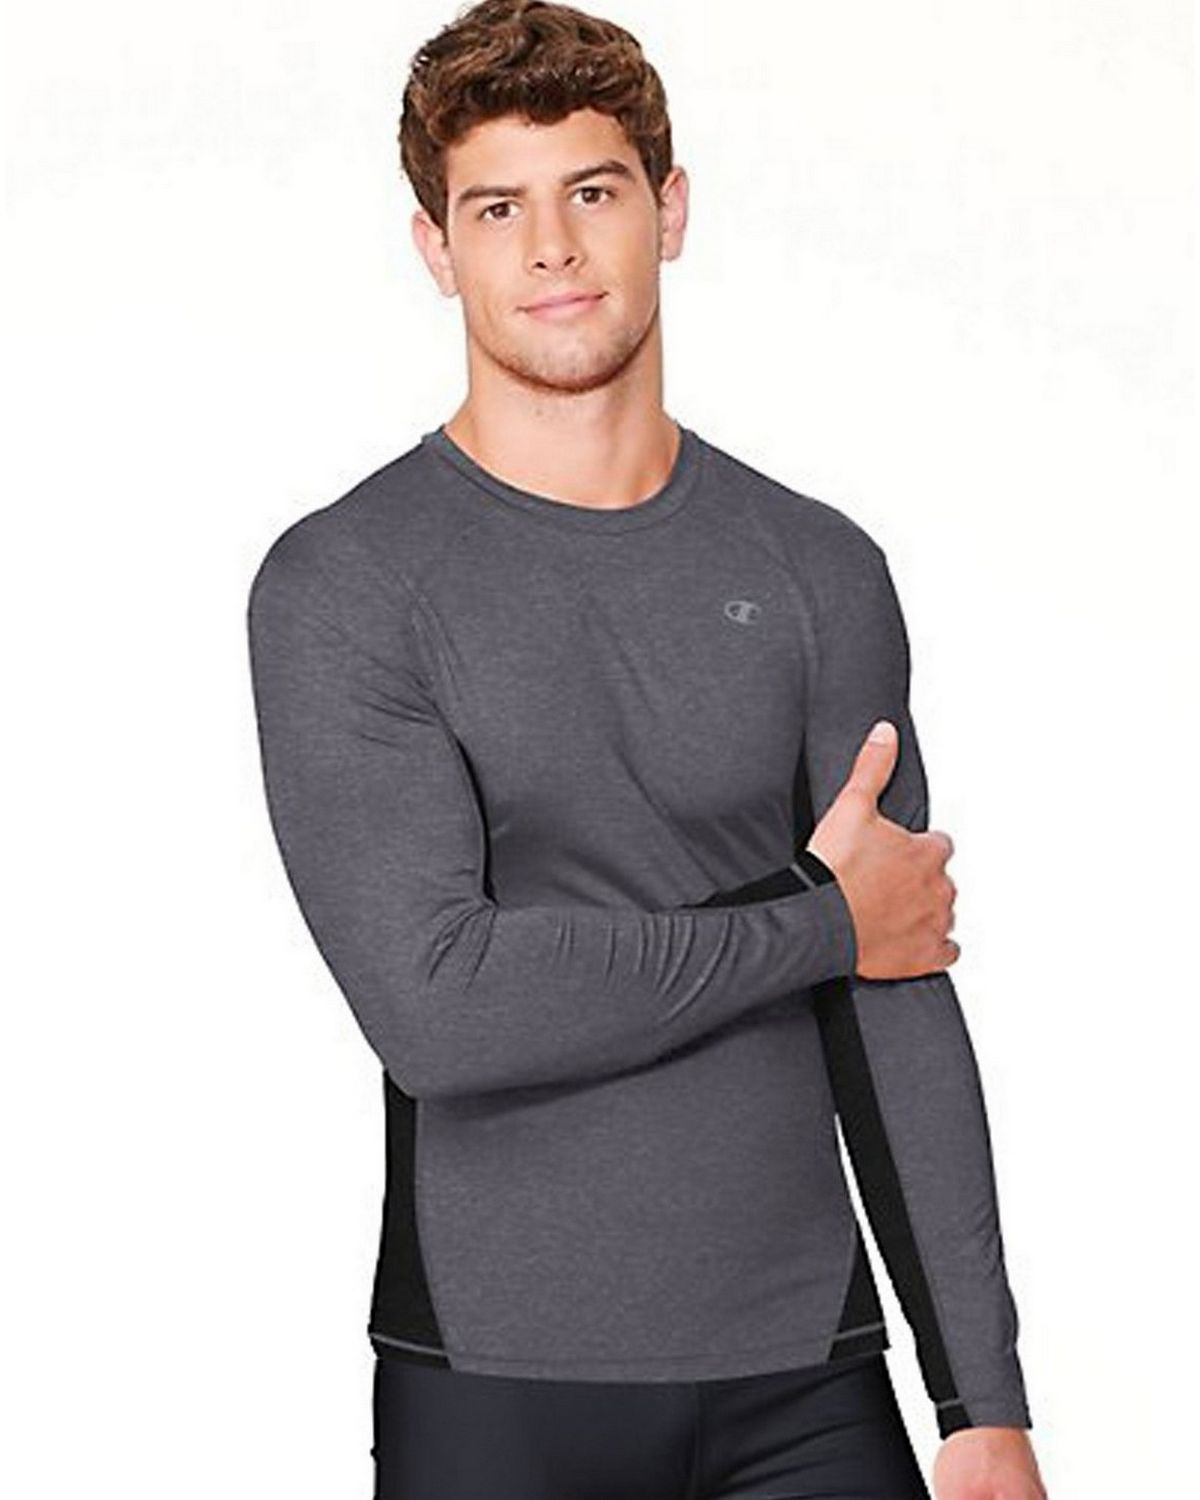 Champion T6607 Vapor PowerTrain Long Sleeve Colorblock Mens Tee - Granite Heather/Black - S T6607